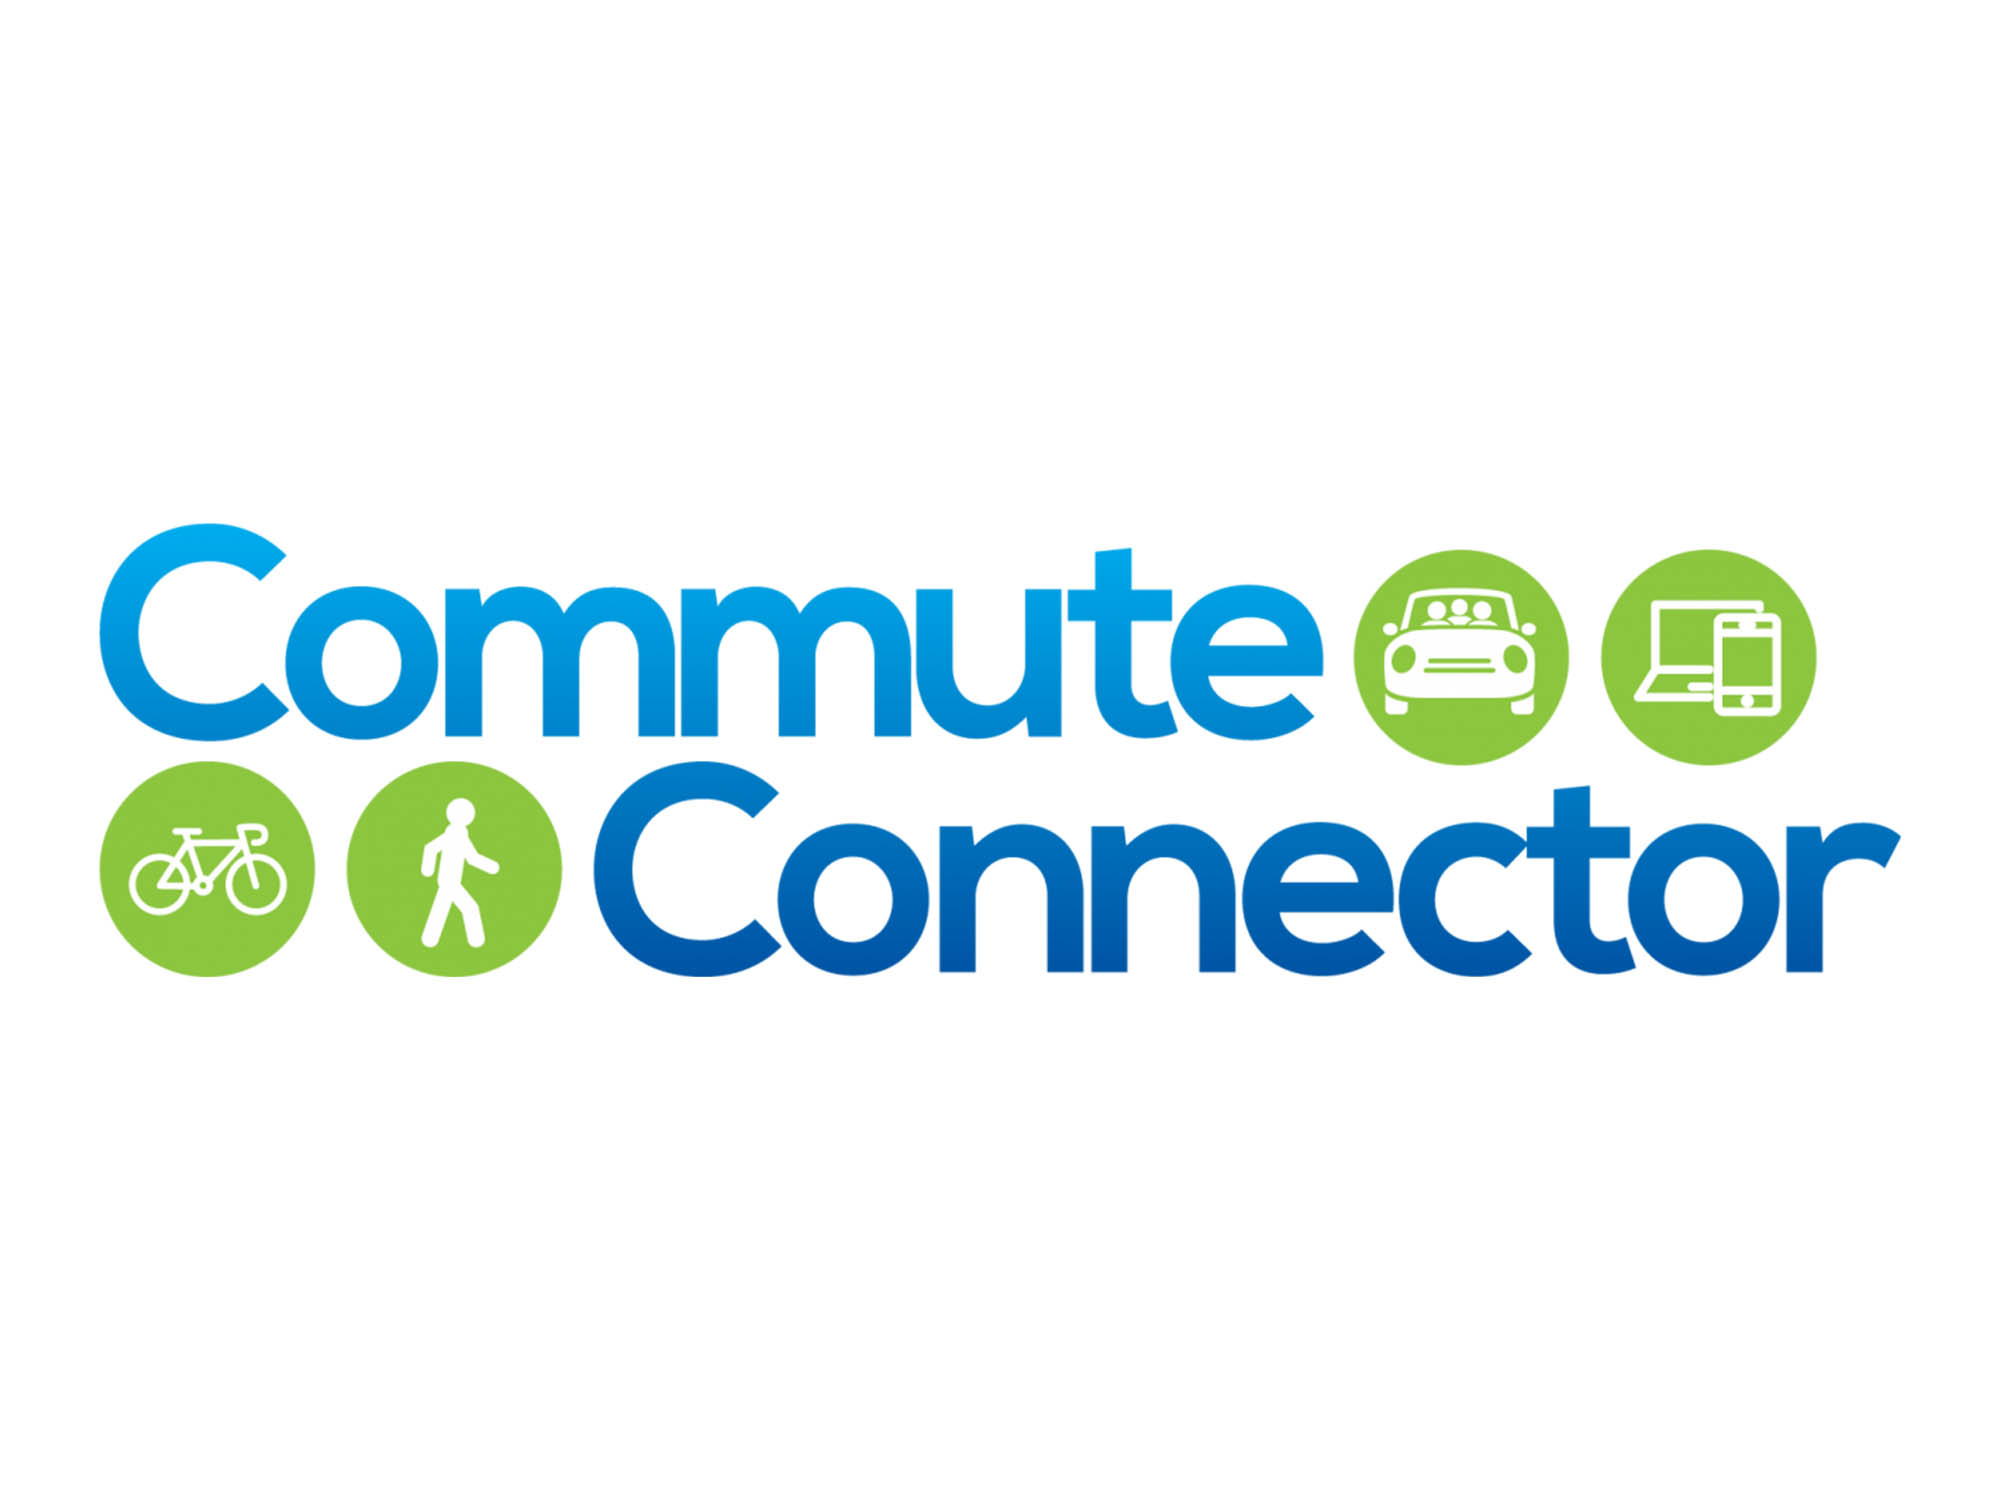 commute-connector-logo-card